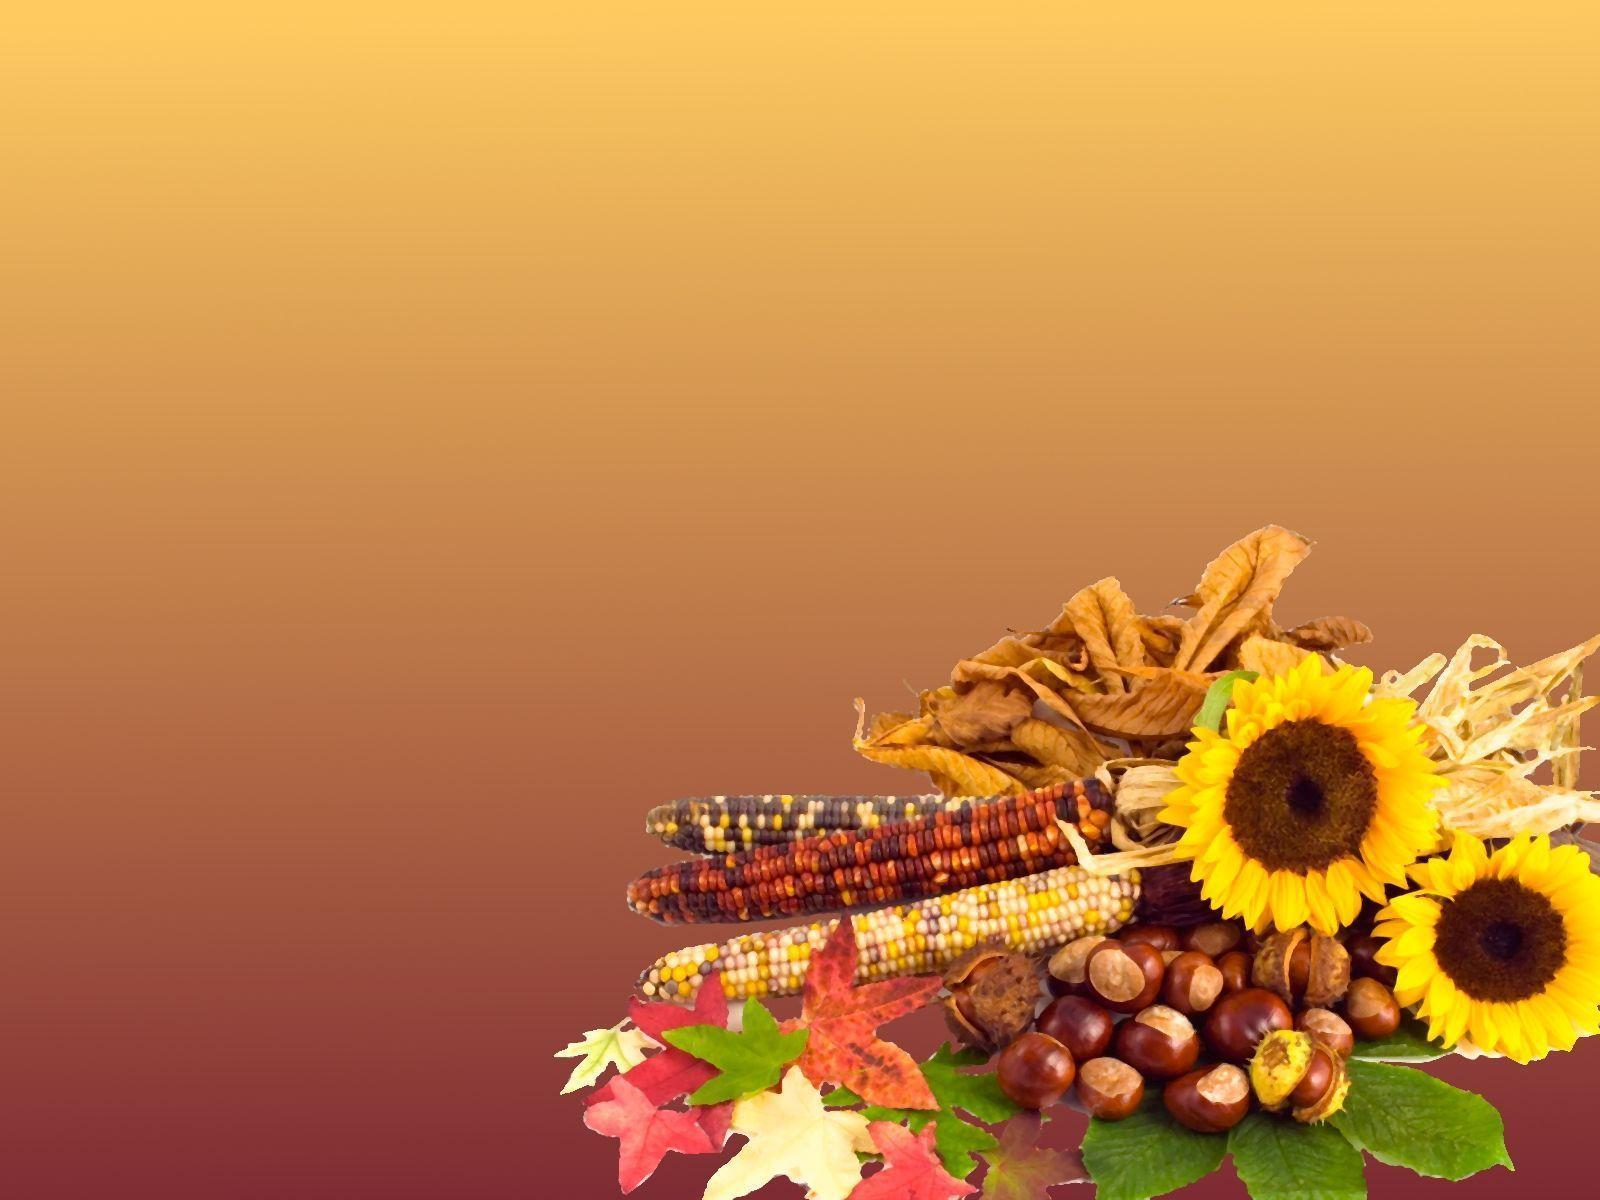 Wallpapers For > Thanksgiving Harvest Wallpapers